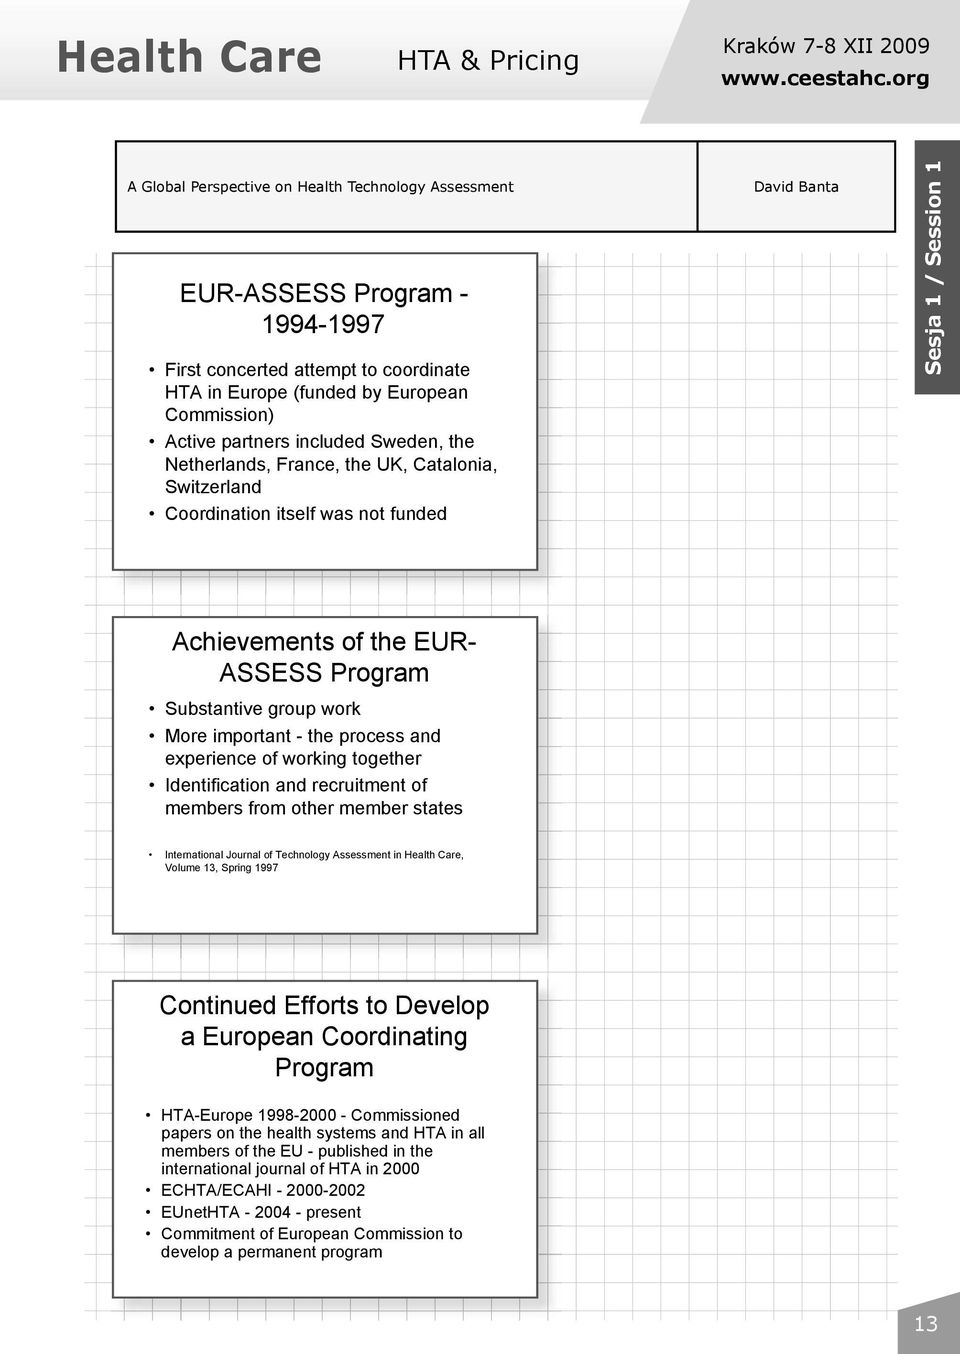 Sweden, the Netherlands, France, the UK, Catalonia, Switzerland Coordination itself was not funded David Banta Sesja 1 / Session 1 Achievements of the EUR- ASSESS Program Substantive group work More